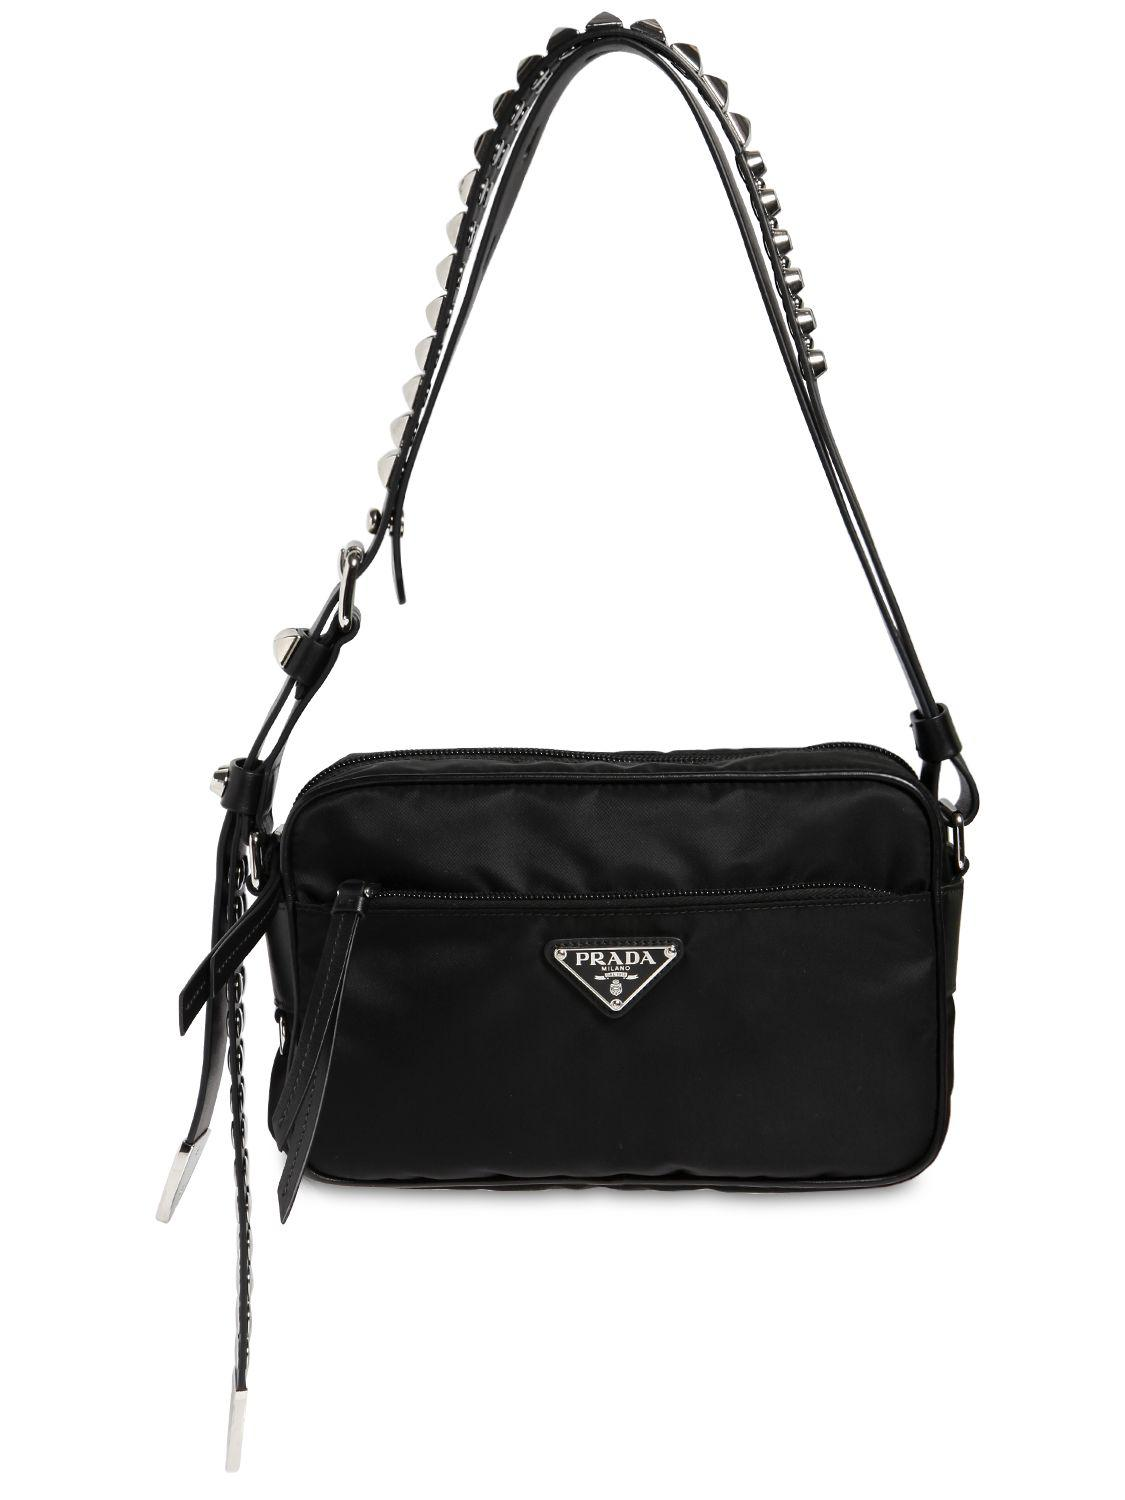 25cdcef2d28a ... low price prada black nylon camera bag w studded strap lyst. view  fullscreen 3f046 23938